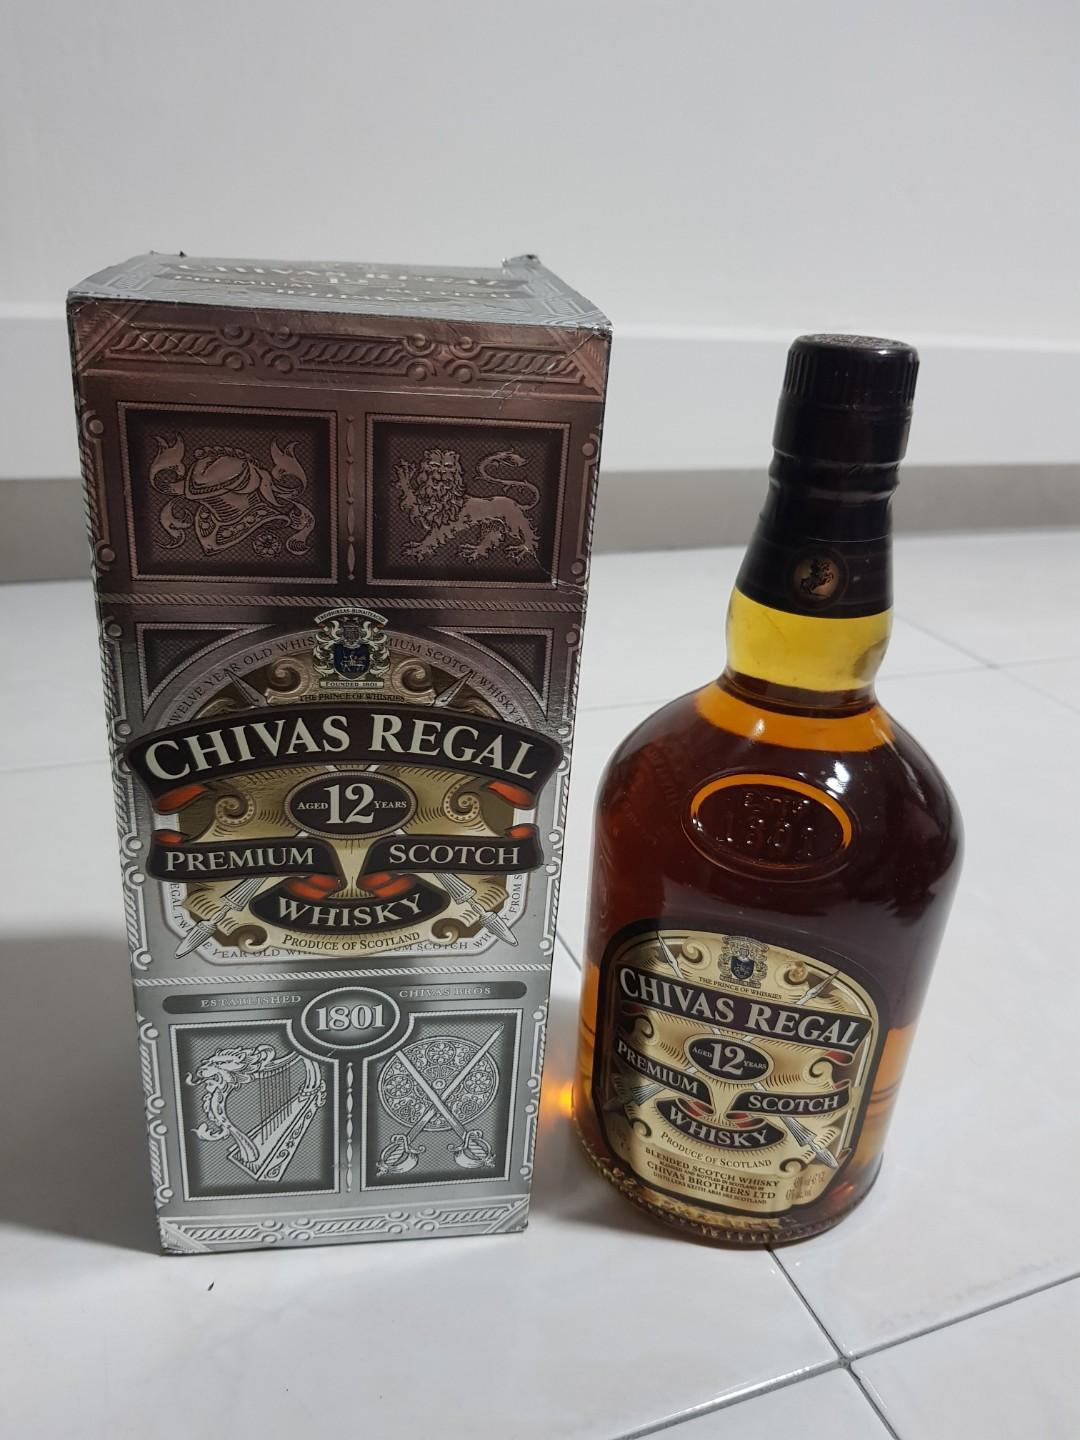 Chivas Regal 12 Years (Not the new version)